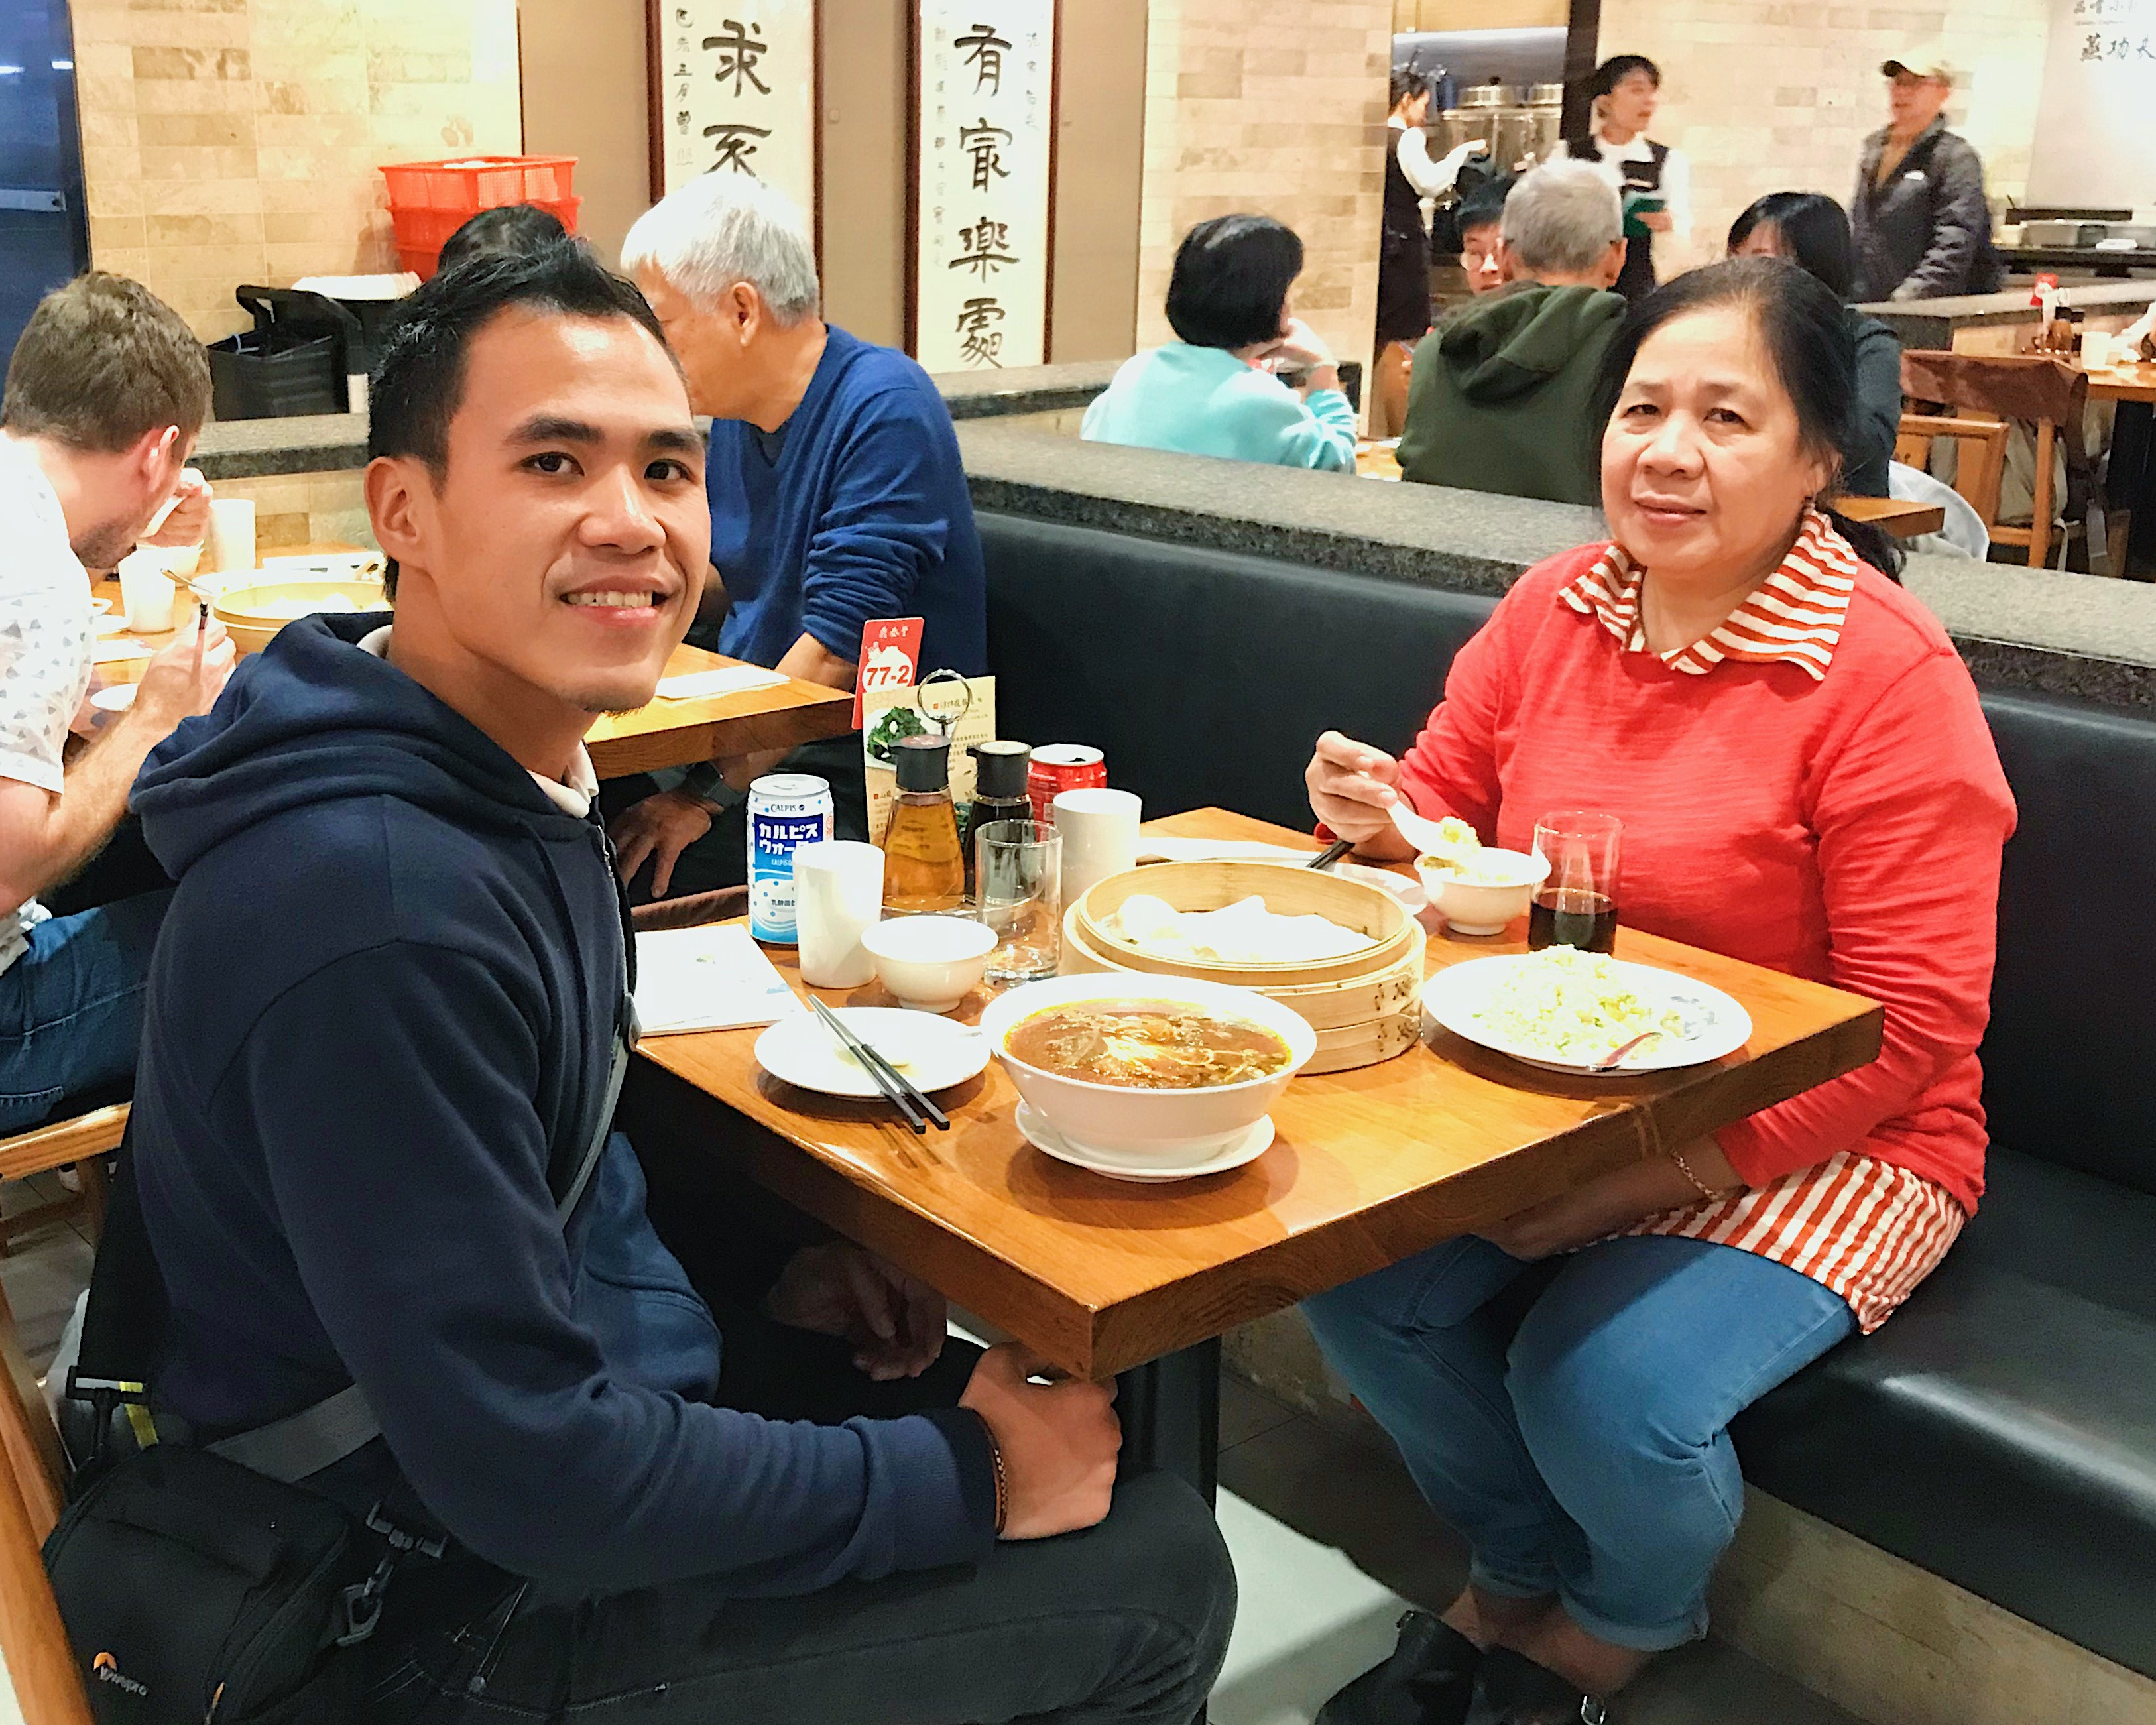 DIN TAI FUNG. Here's my Mama and I as we are enjoying Din Tai Fung's xiaolongbao and beef noodles.